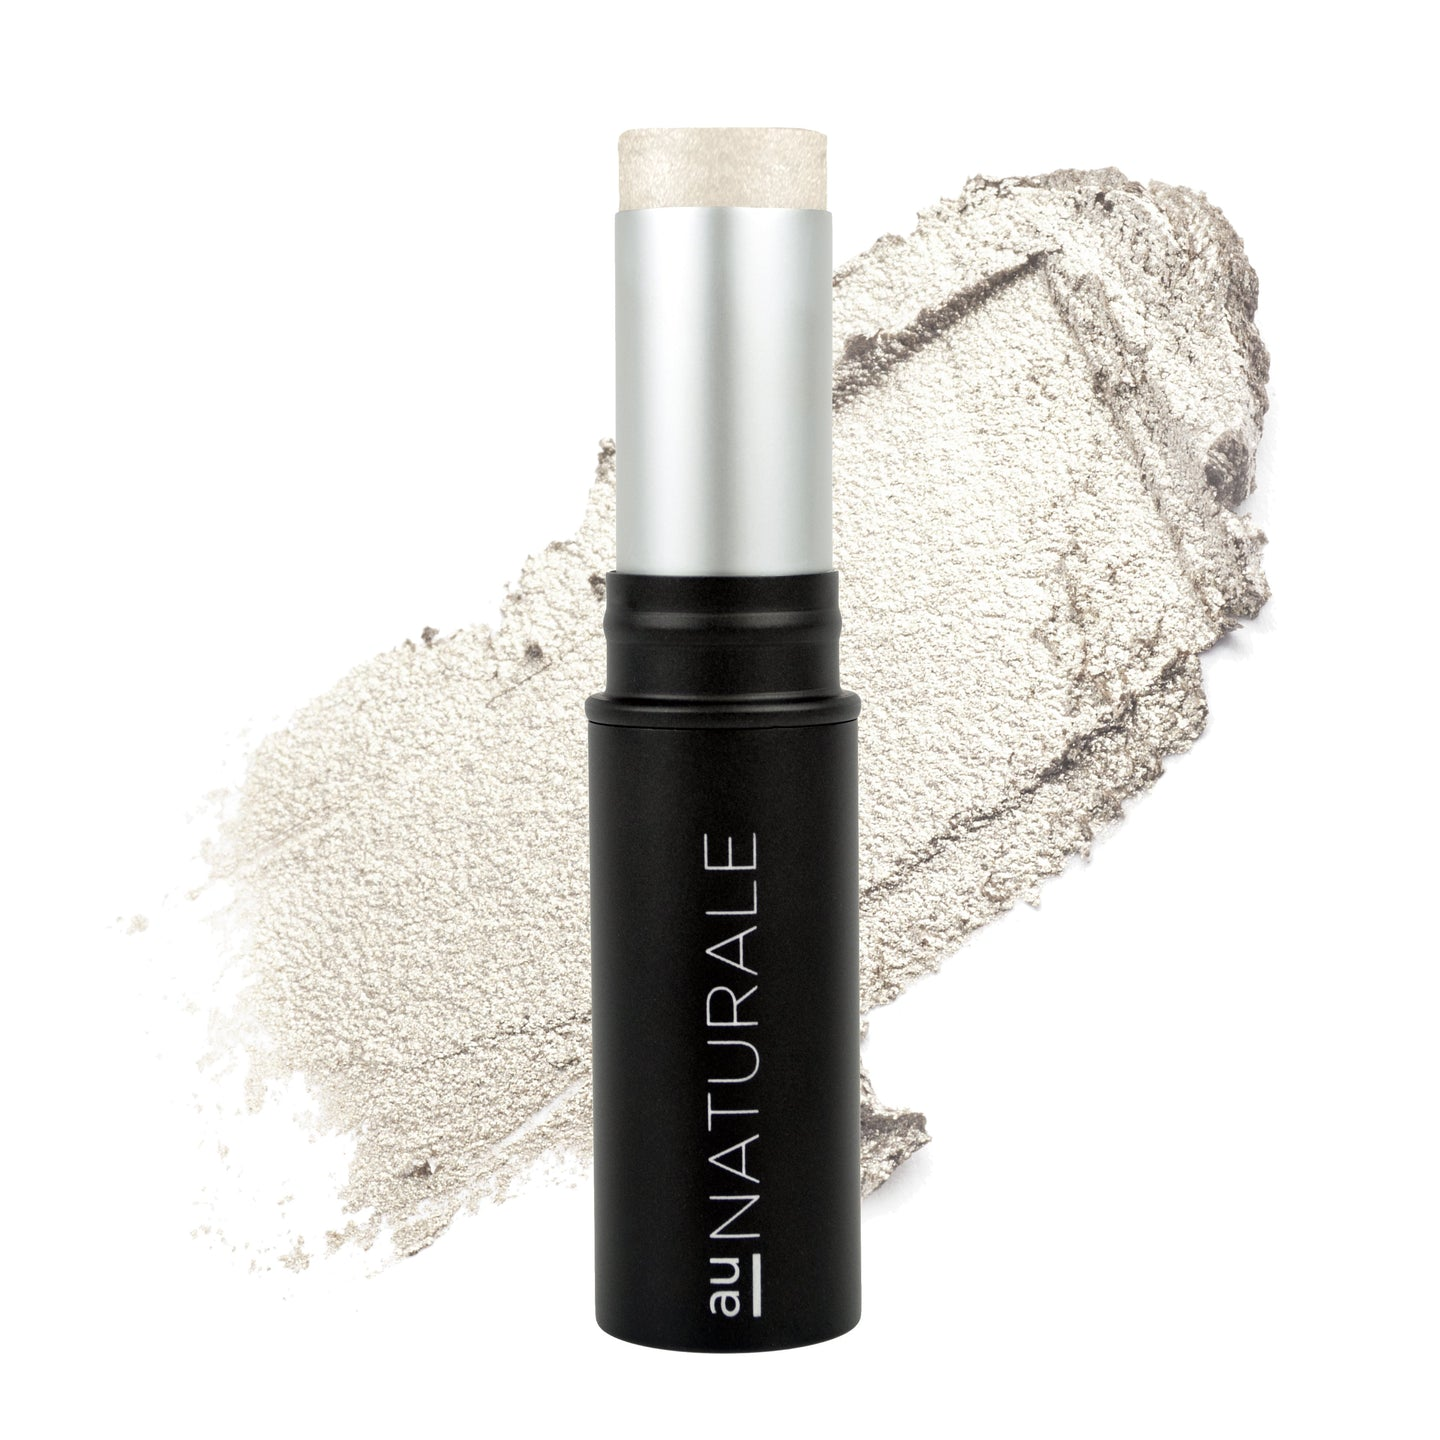 Shop Highlighter Stick in Celestial by Au Naturale Cosmetics - Lets make it a trend #explorebeautiful